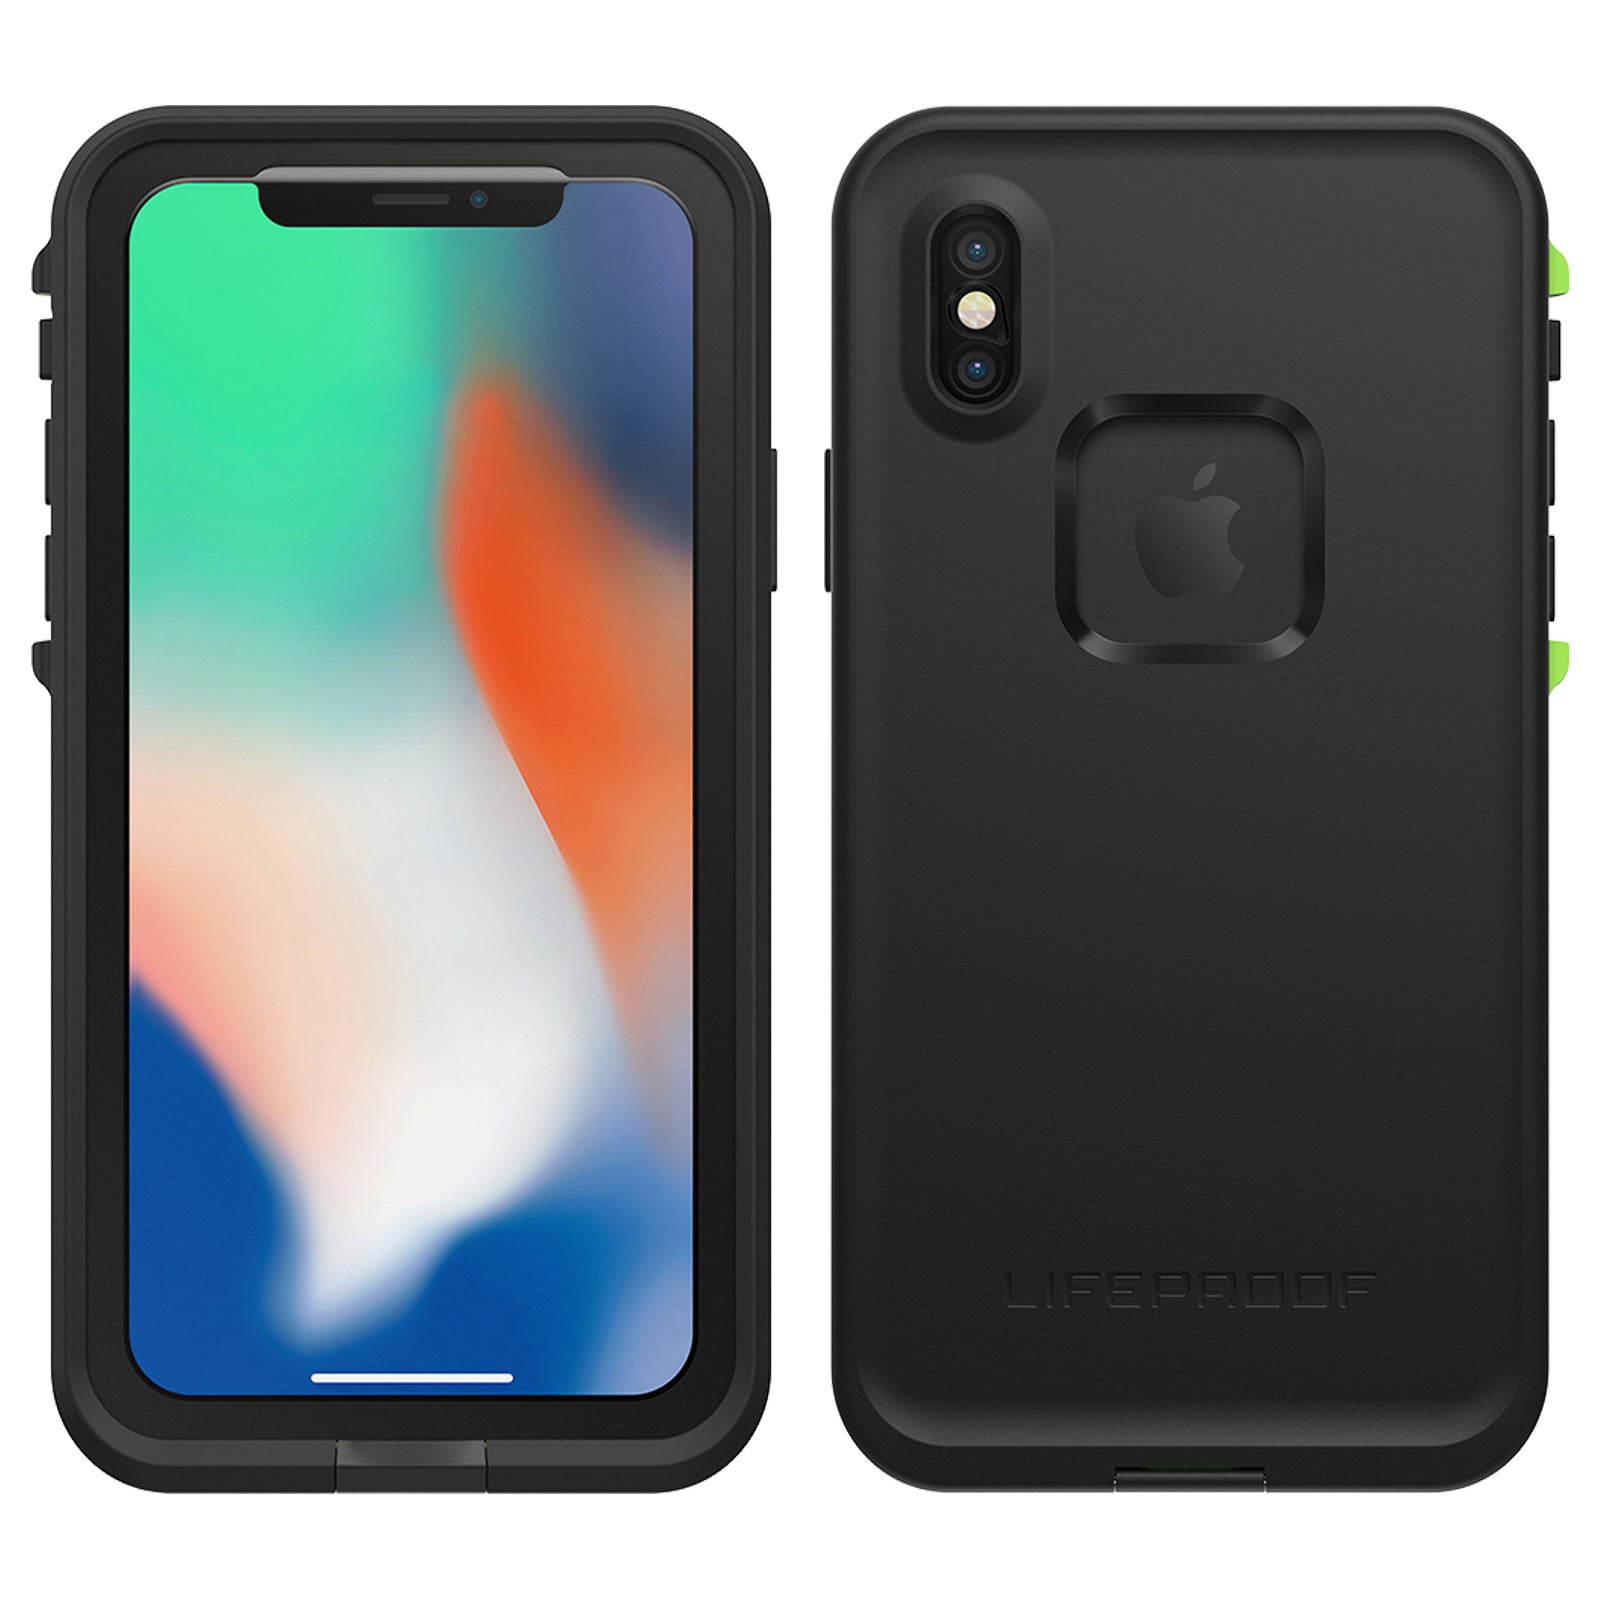 reputable site 8fd1a d4fea Lifeproof Fre Case For iPhone X - Night Lite Black